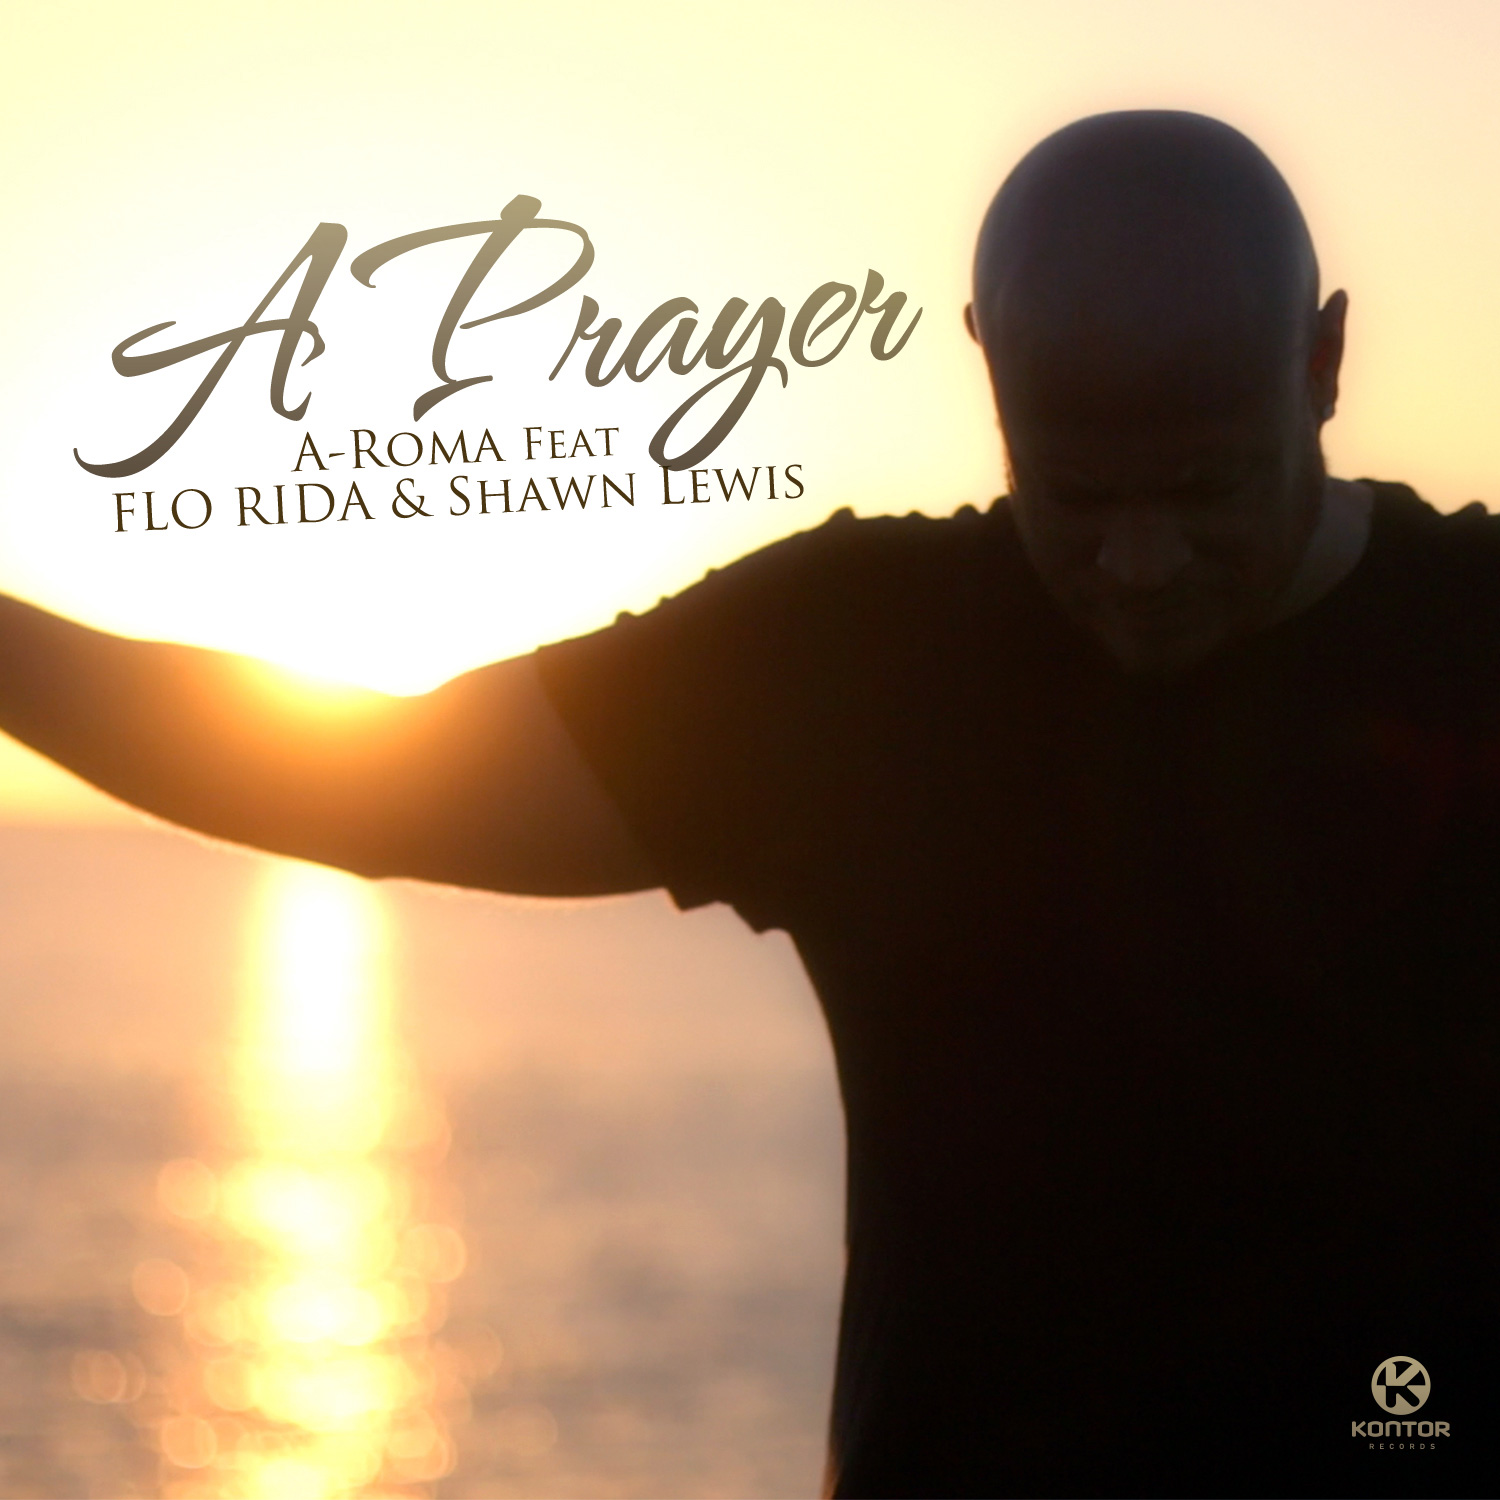 A-ROMA FEAT. FLO RIDA & SHAWN LEWIS - A Prayer (Subside/Kontor/Kontor New Media)